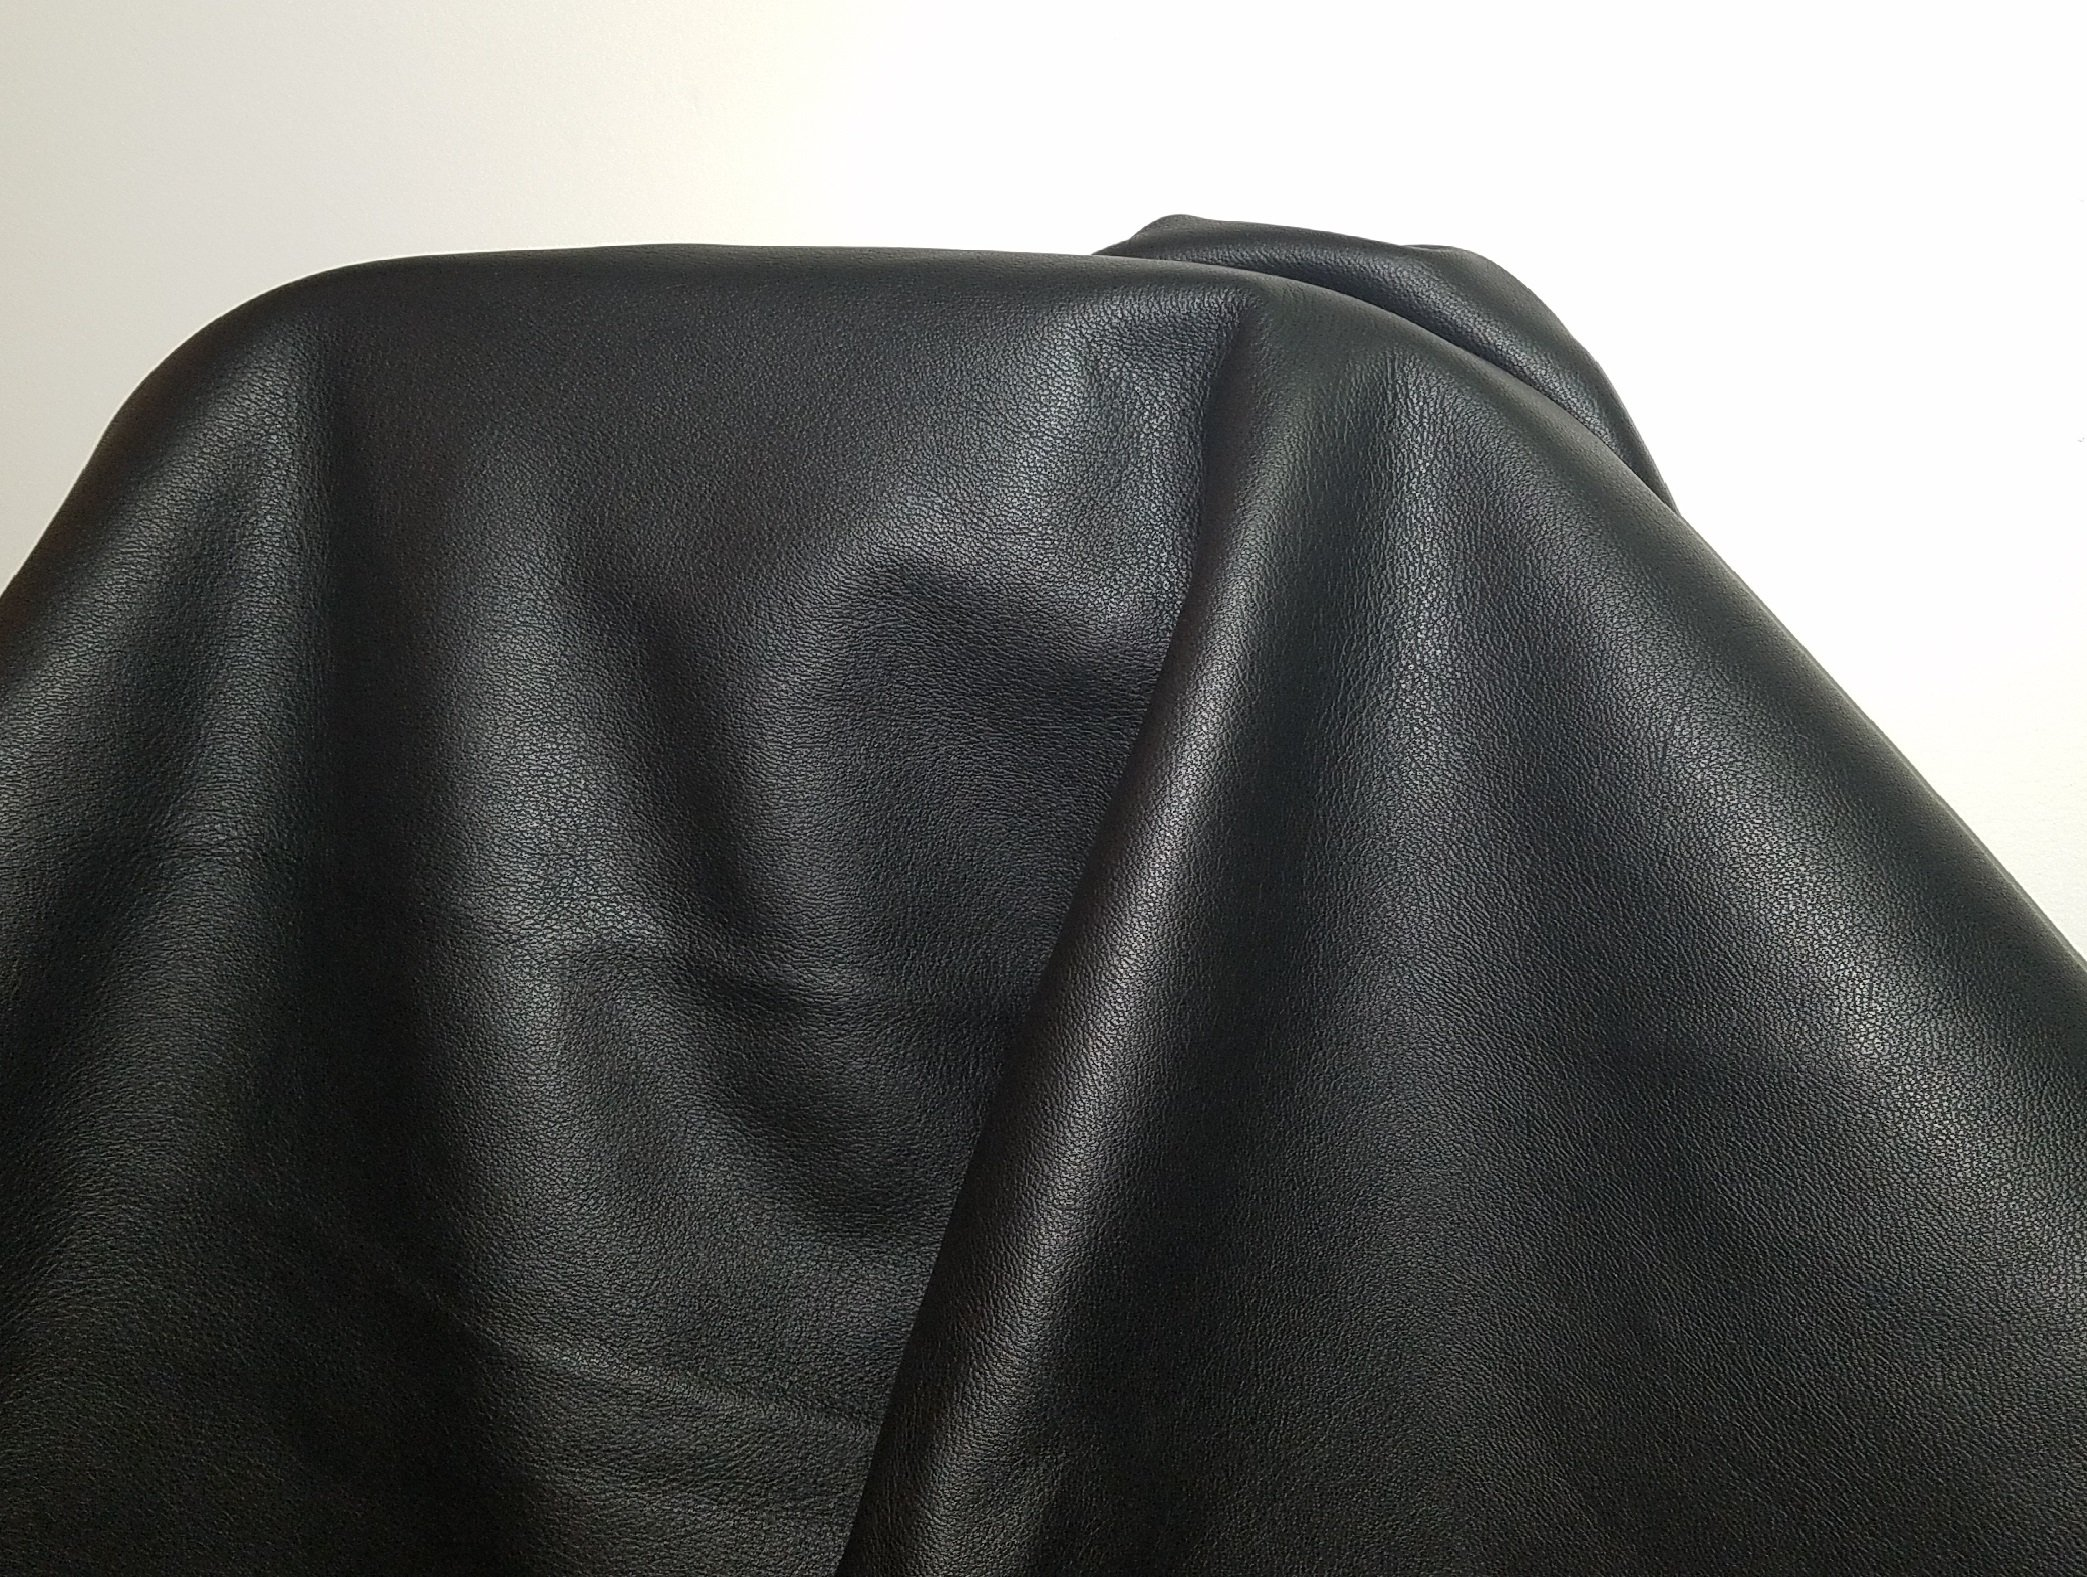 Black Naked Goat Grain Cow Hide Leather Skins 22 SQ.FT. 2.5-3.0 OZ. Upholstery Bookbinding CHAP NAT Leathers (Black)